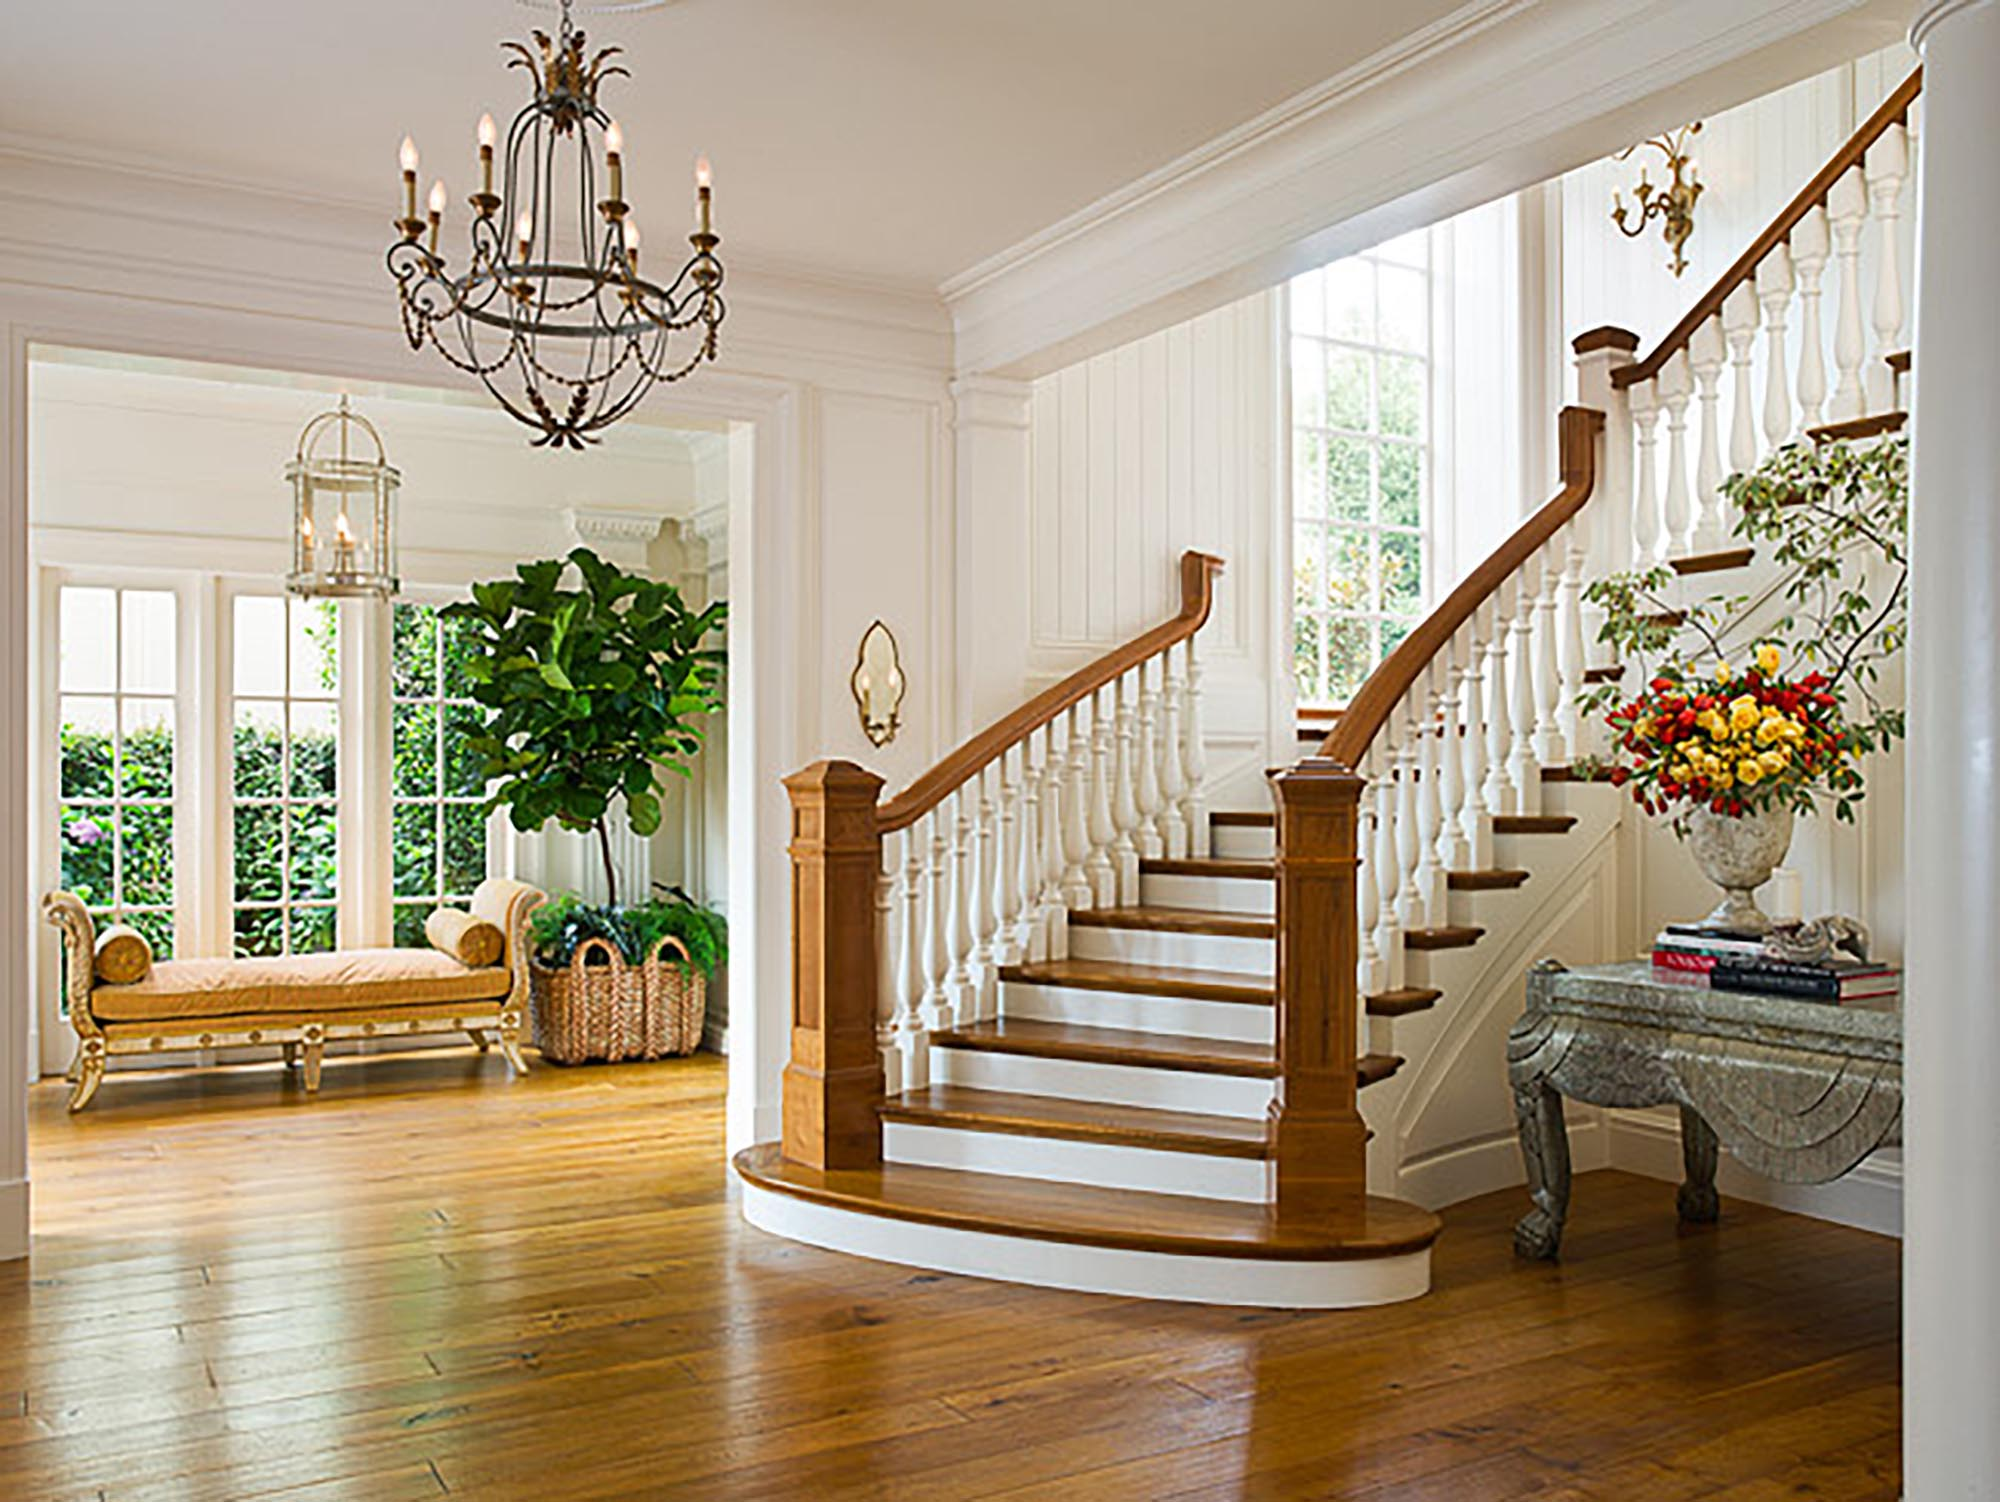 Pacific Heights Residence Staircase